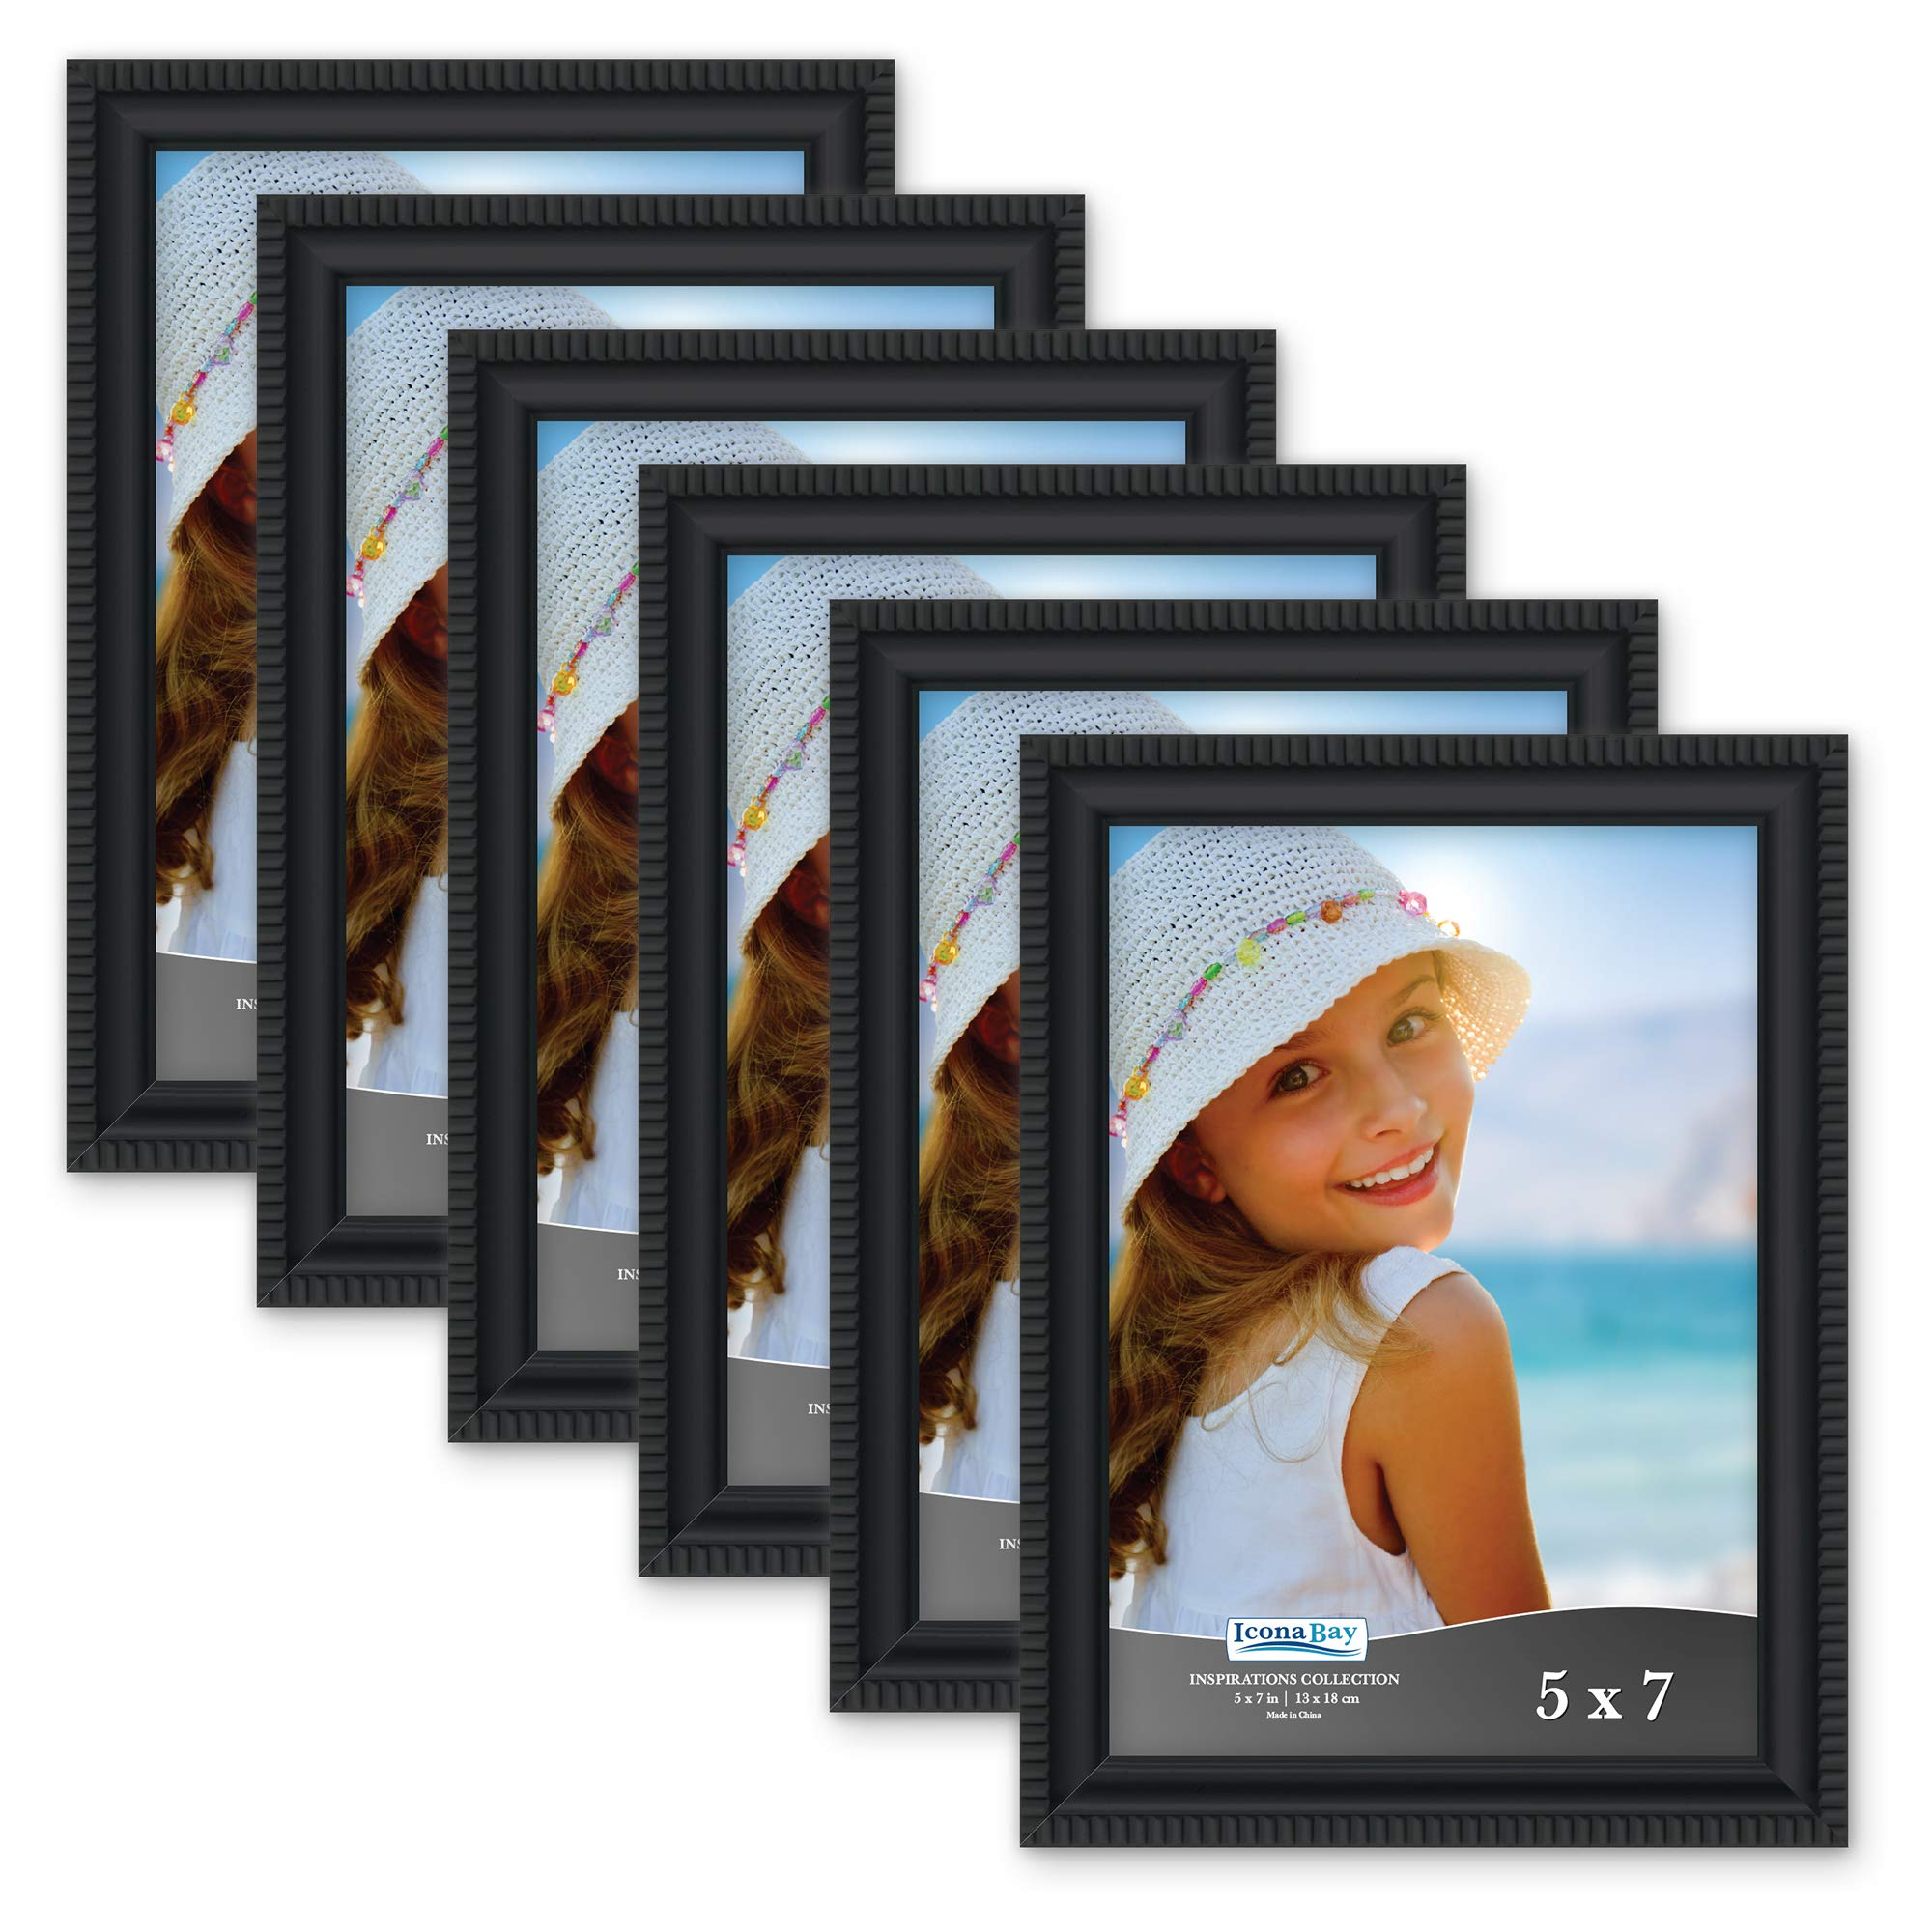 Icona Bay 5x7 Picture Frames (6 Pack, Black) Picture Frame Set, Wall Mount or Table Top, Set of 6 Inspirations Collection by Icona Bay